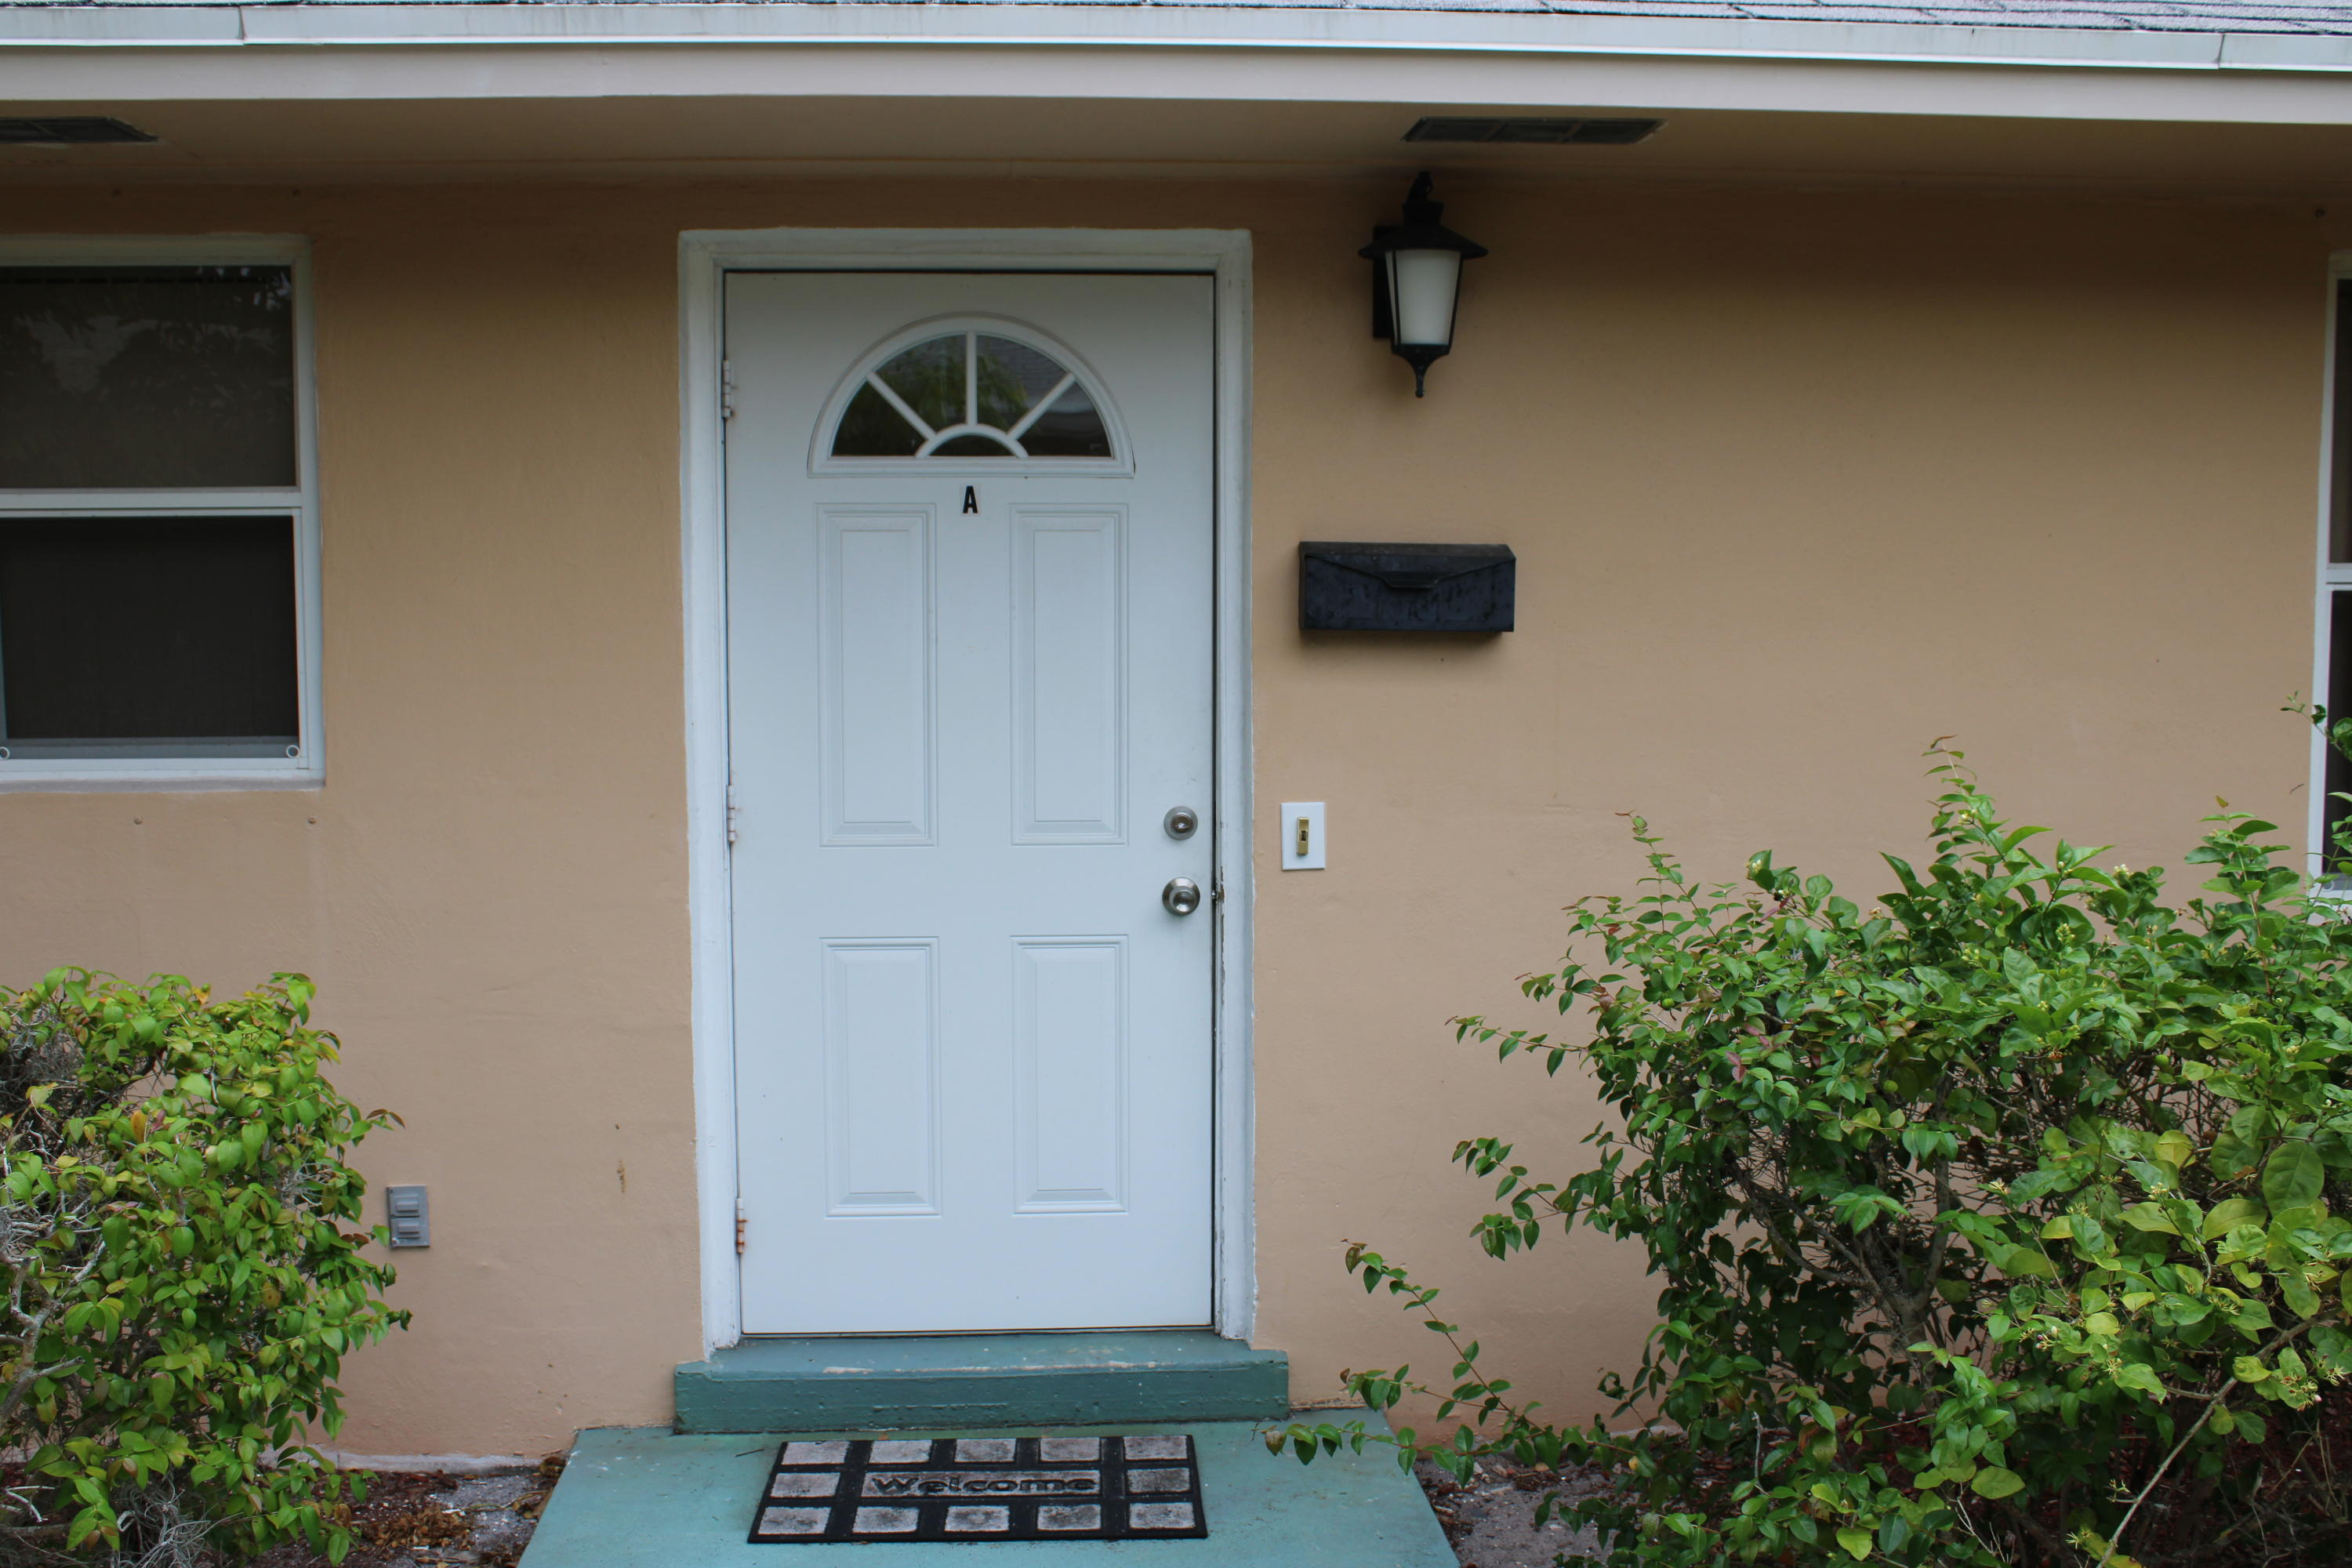 350 7th Avenue,Delray Beach,Florida 33483,1 Bedroom Bedrooms,1 BathroomBathrooms,Apartment,7th,RX-10622786